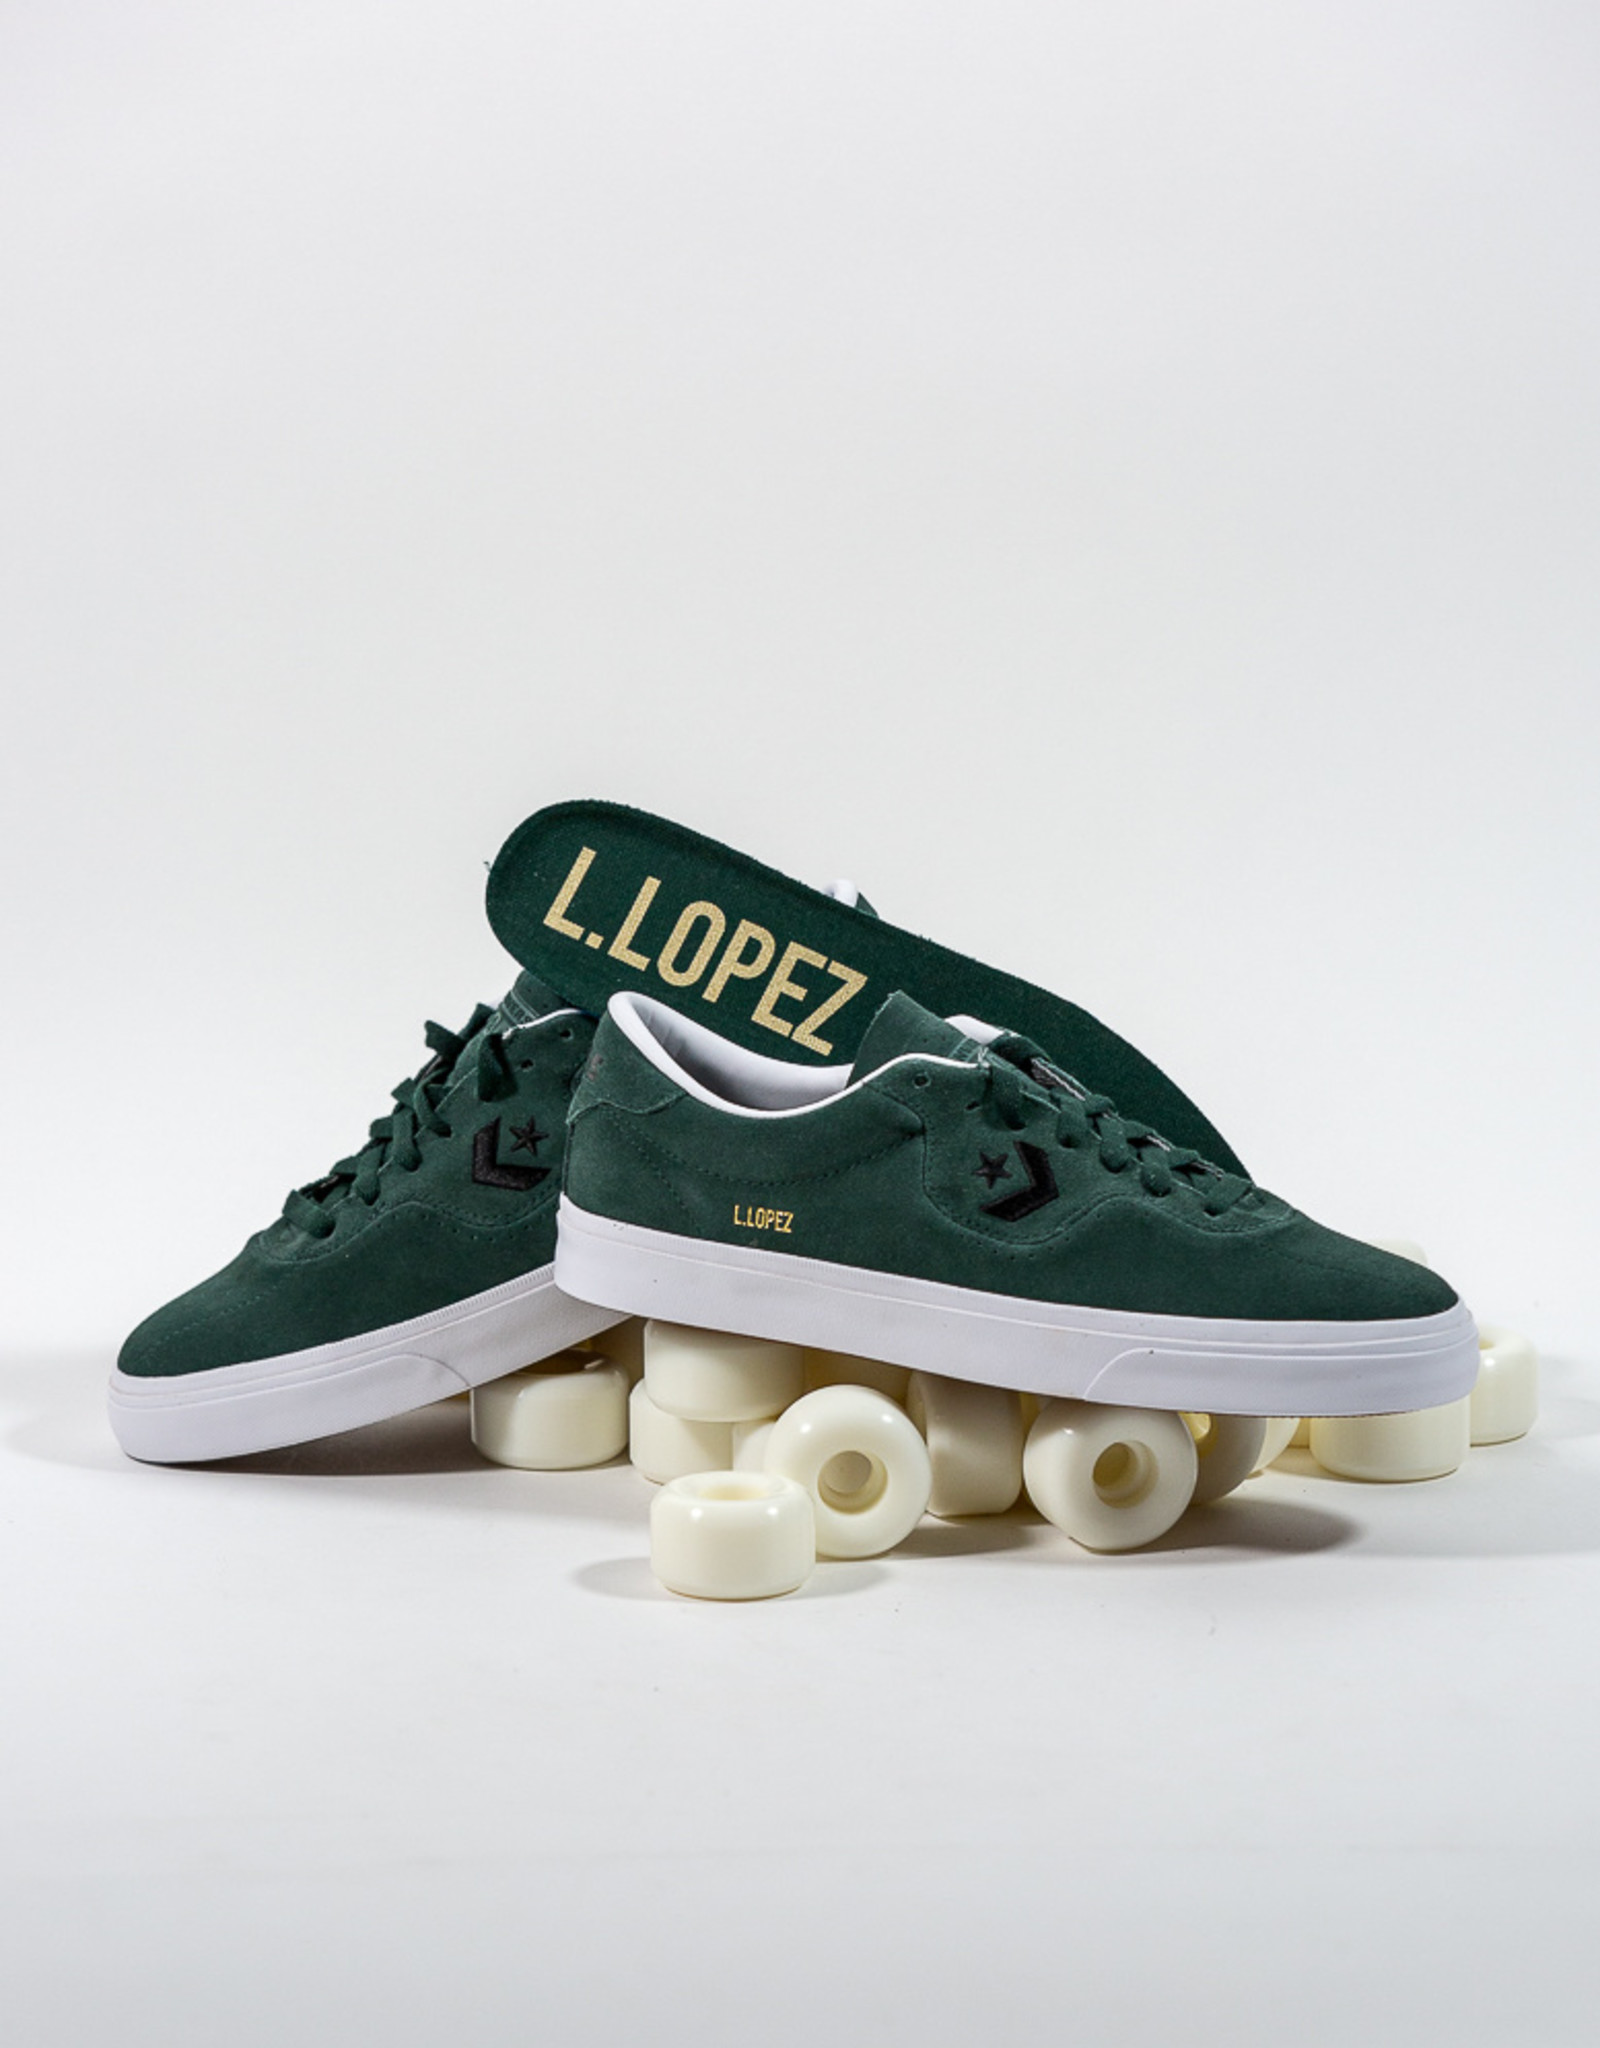 CONVERSE CONVERSE CONS LOUIE LOPEZ PRO OX - DEEP EMERALD/BLACK/WHITE